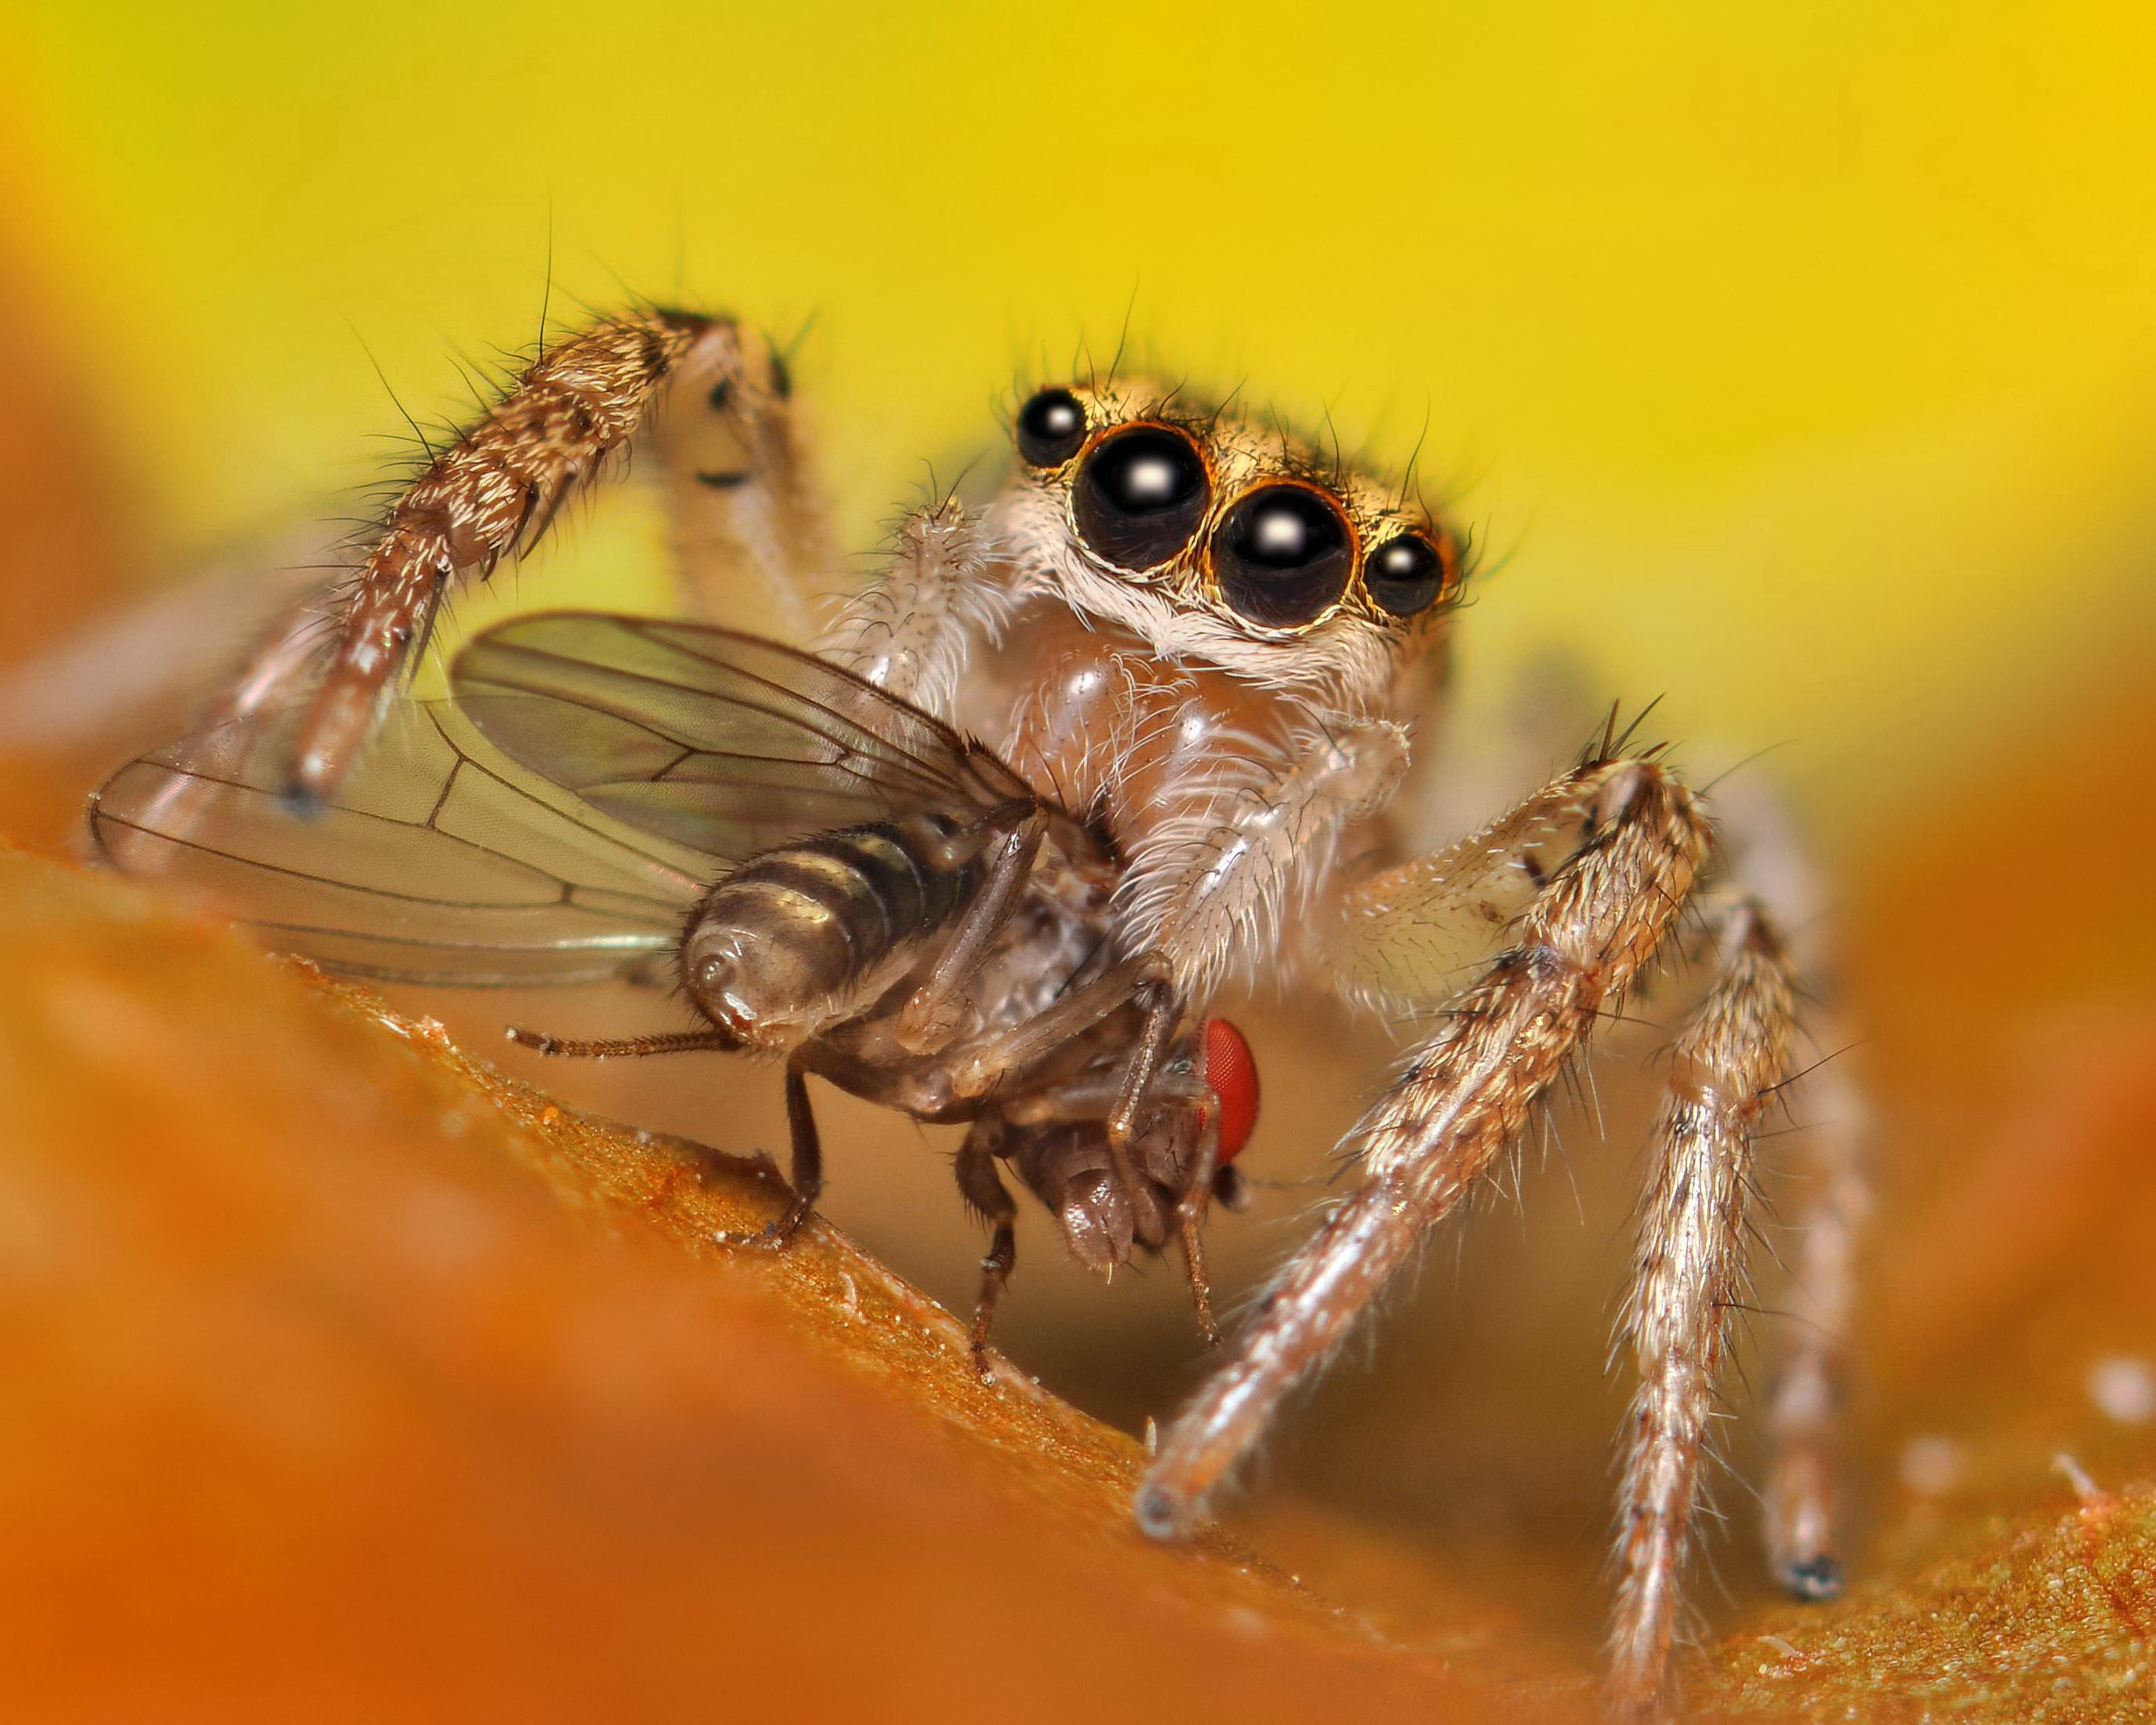 Cute Jumping Spider Wallpaper How Spiders Eat The Infinite Spider